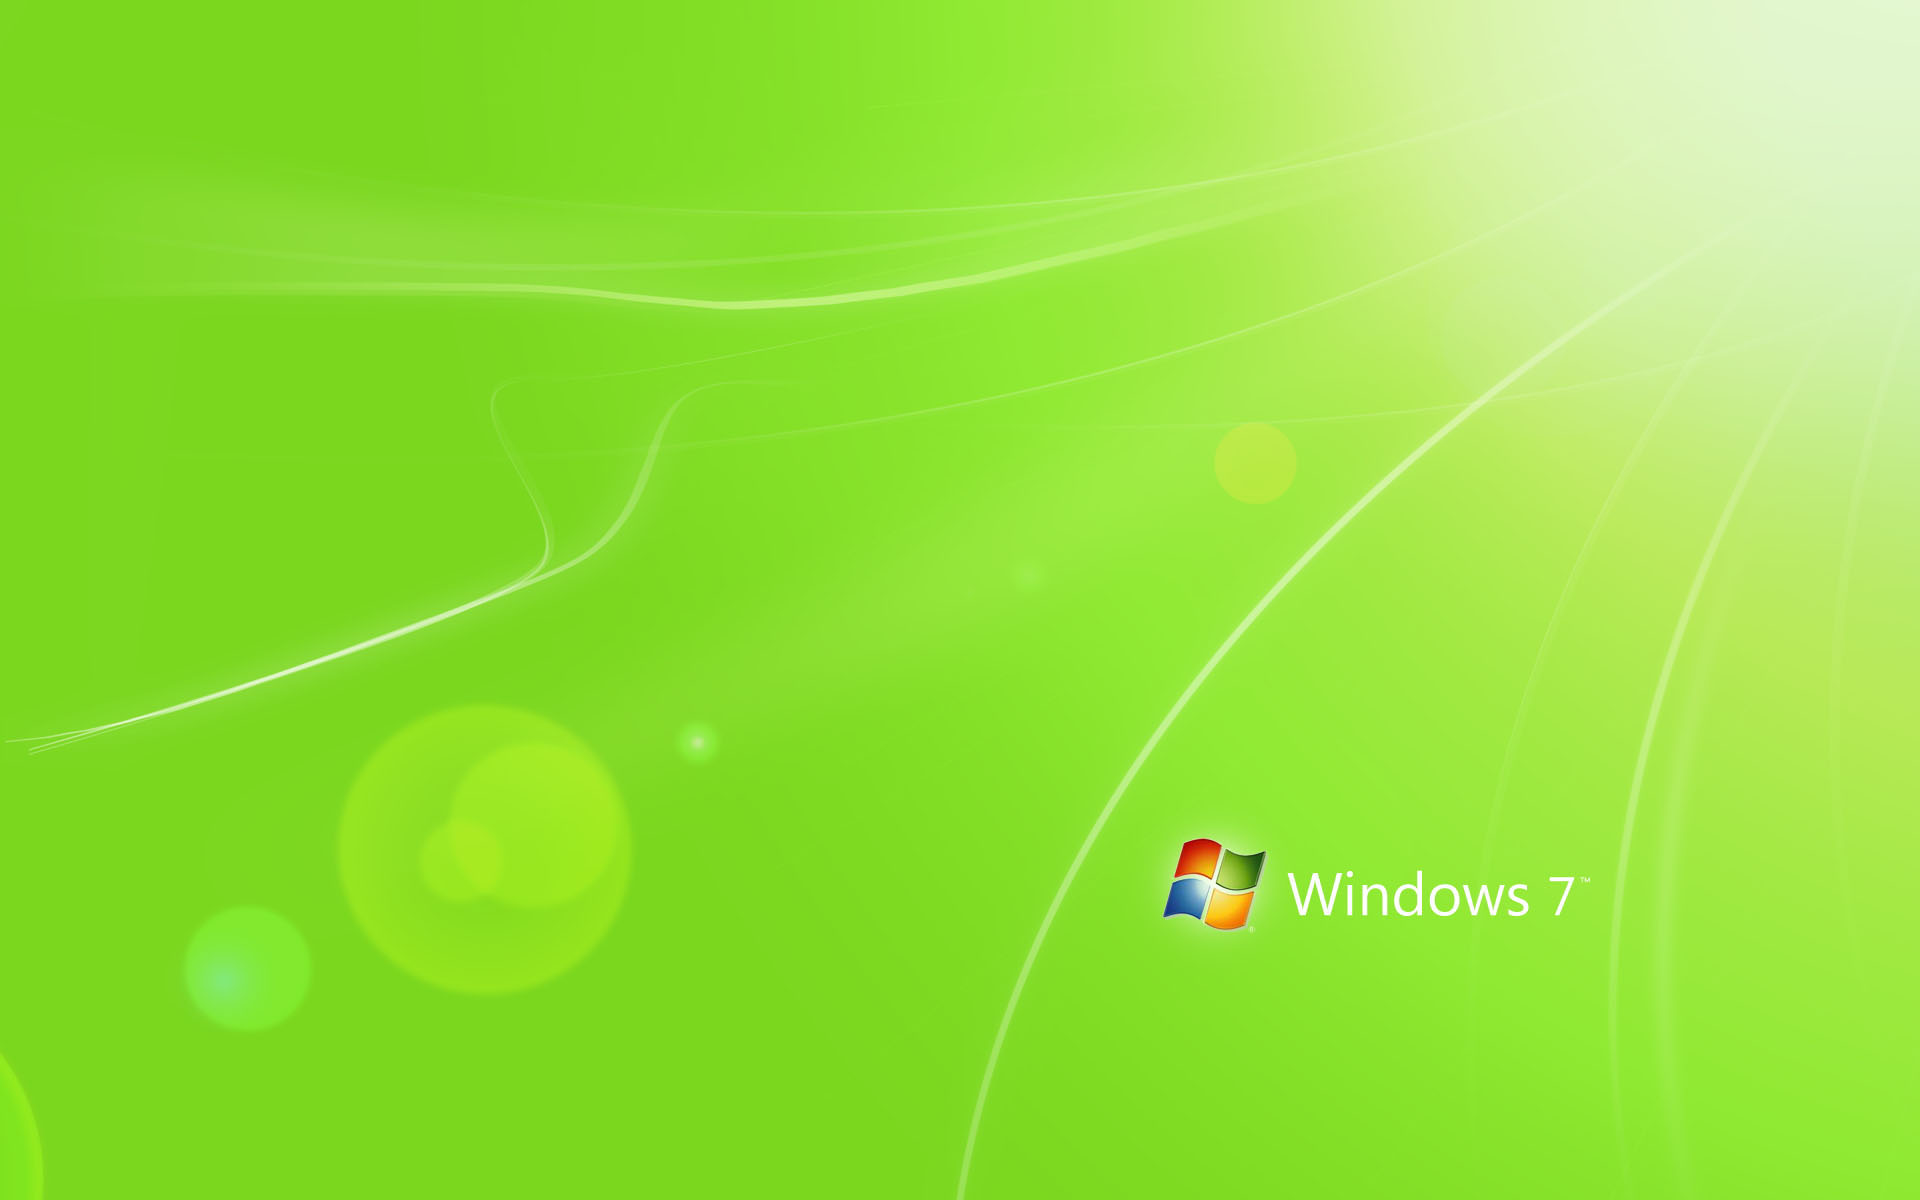 Green Windows 7